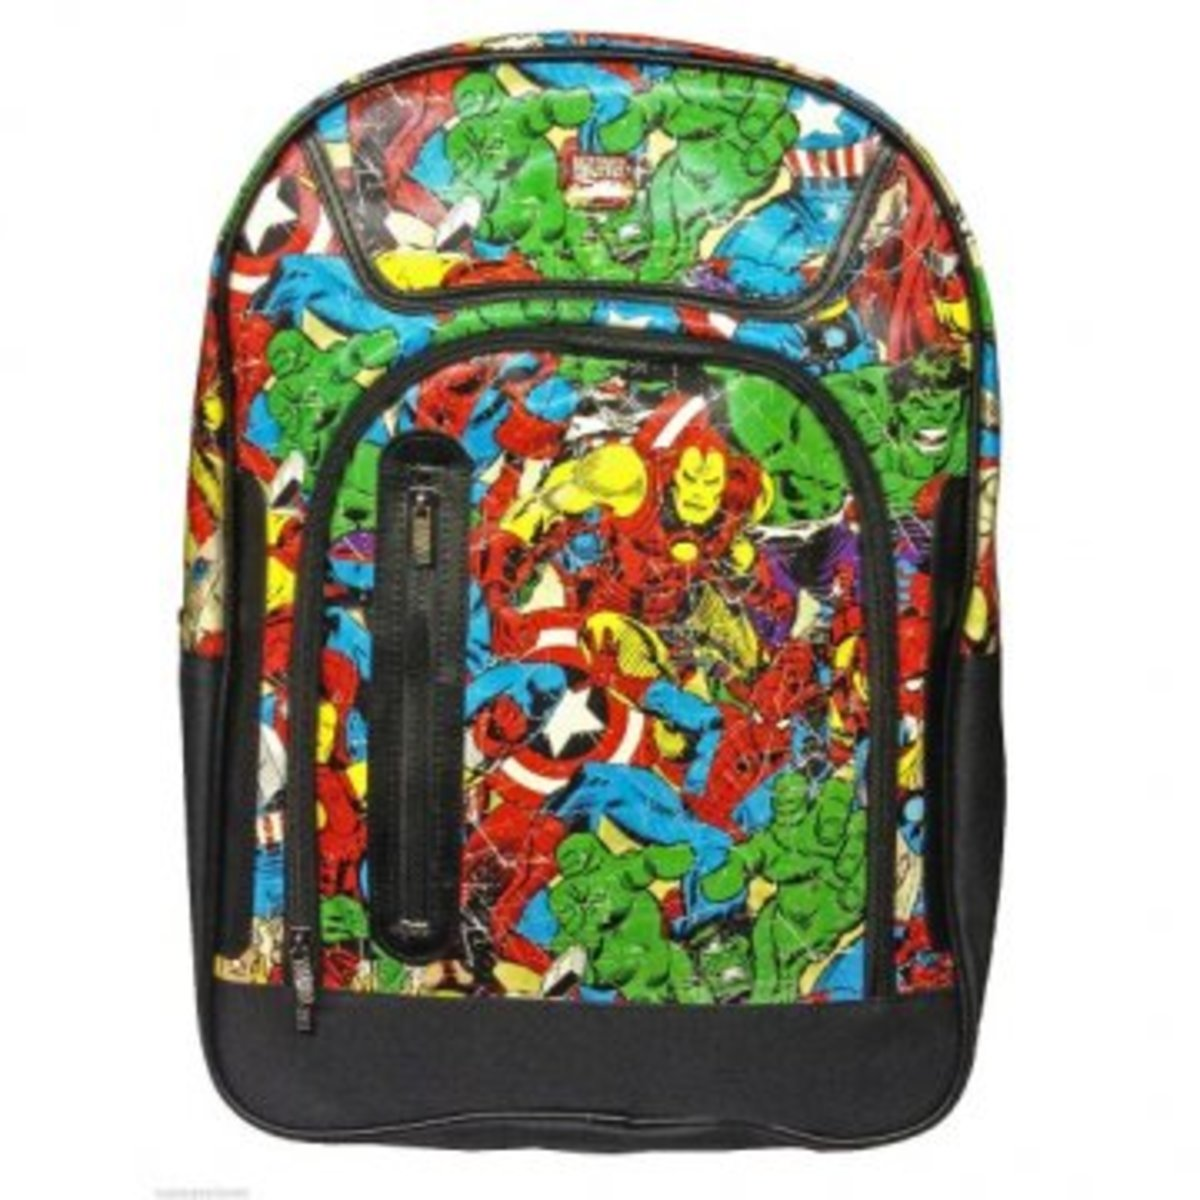 Available at INKEDSHOP.COM: Marvel Comics Multi Character Backpack